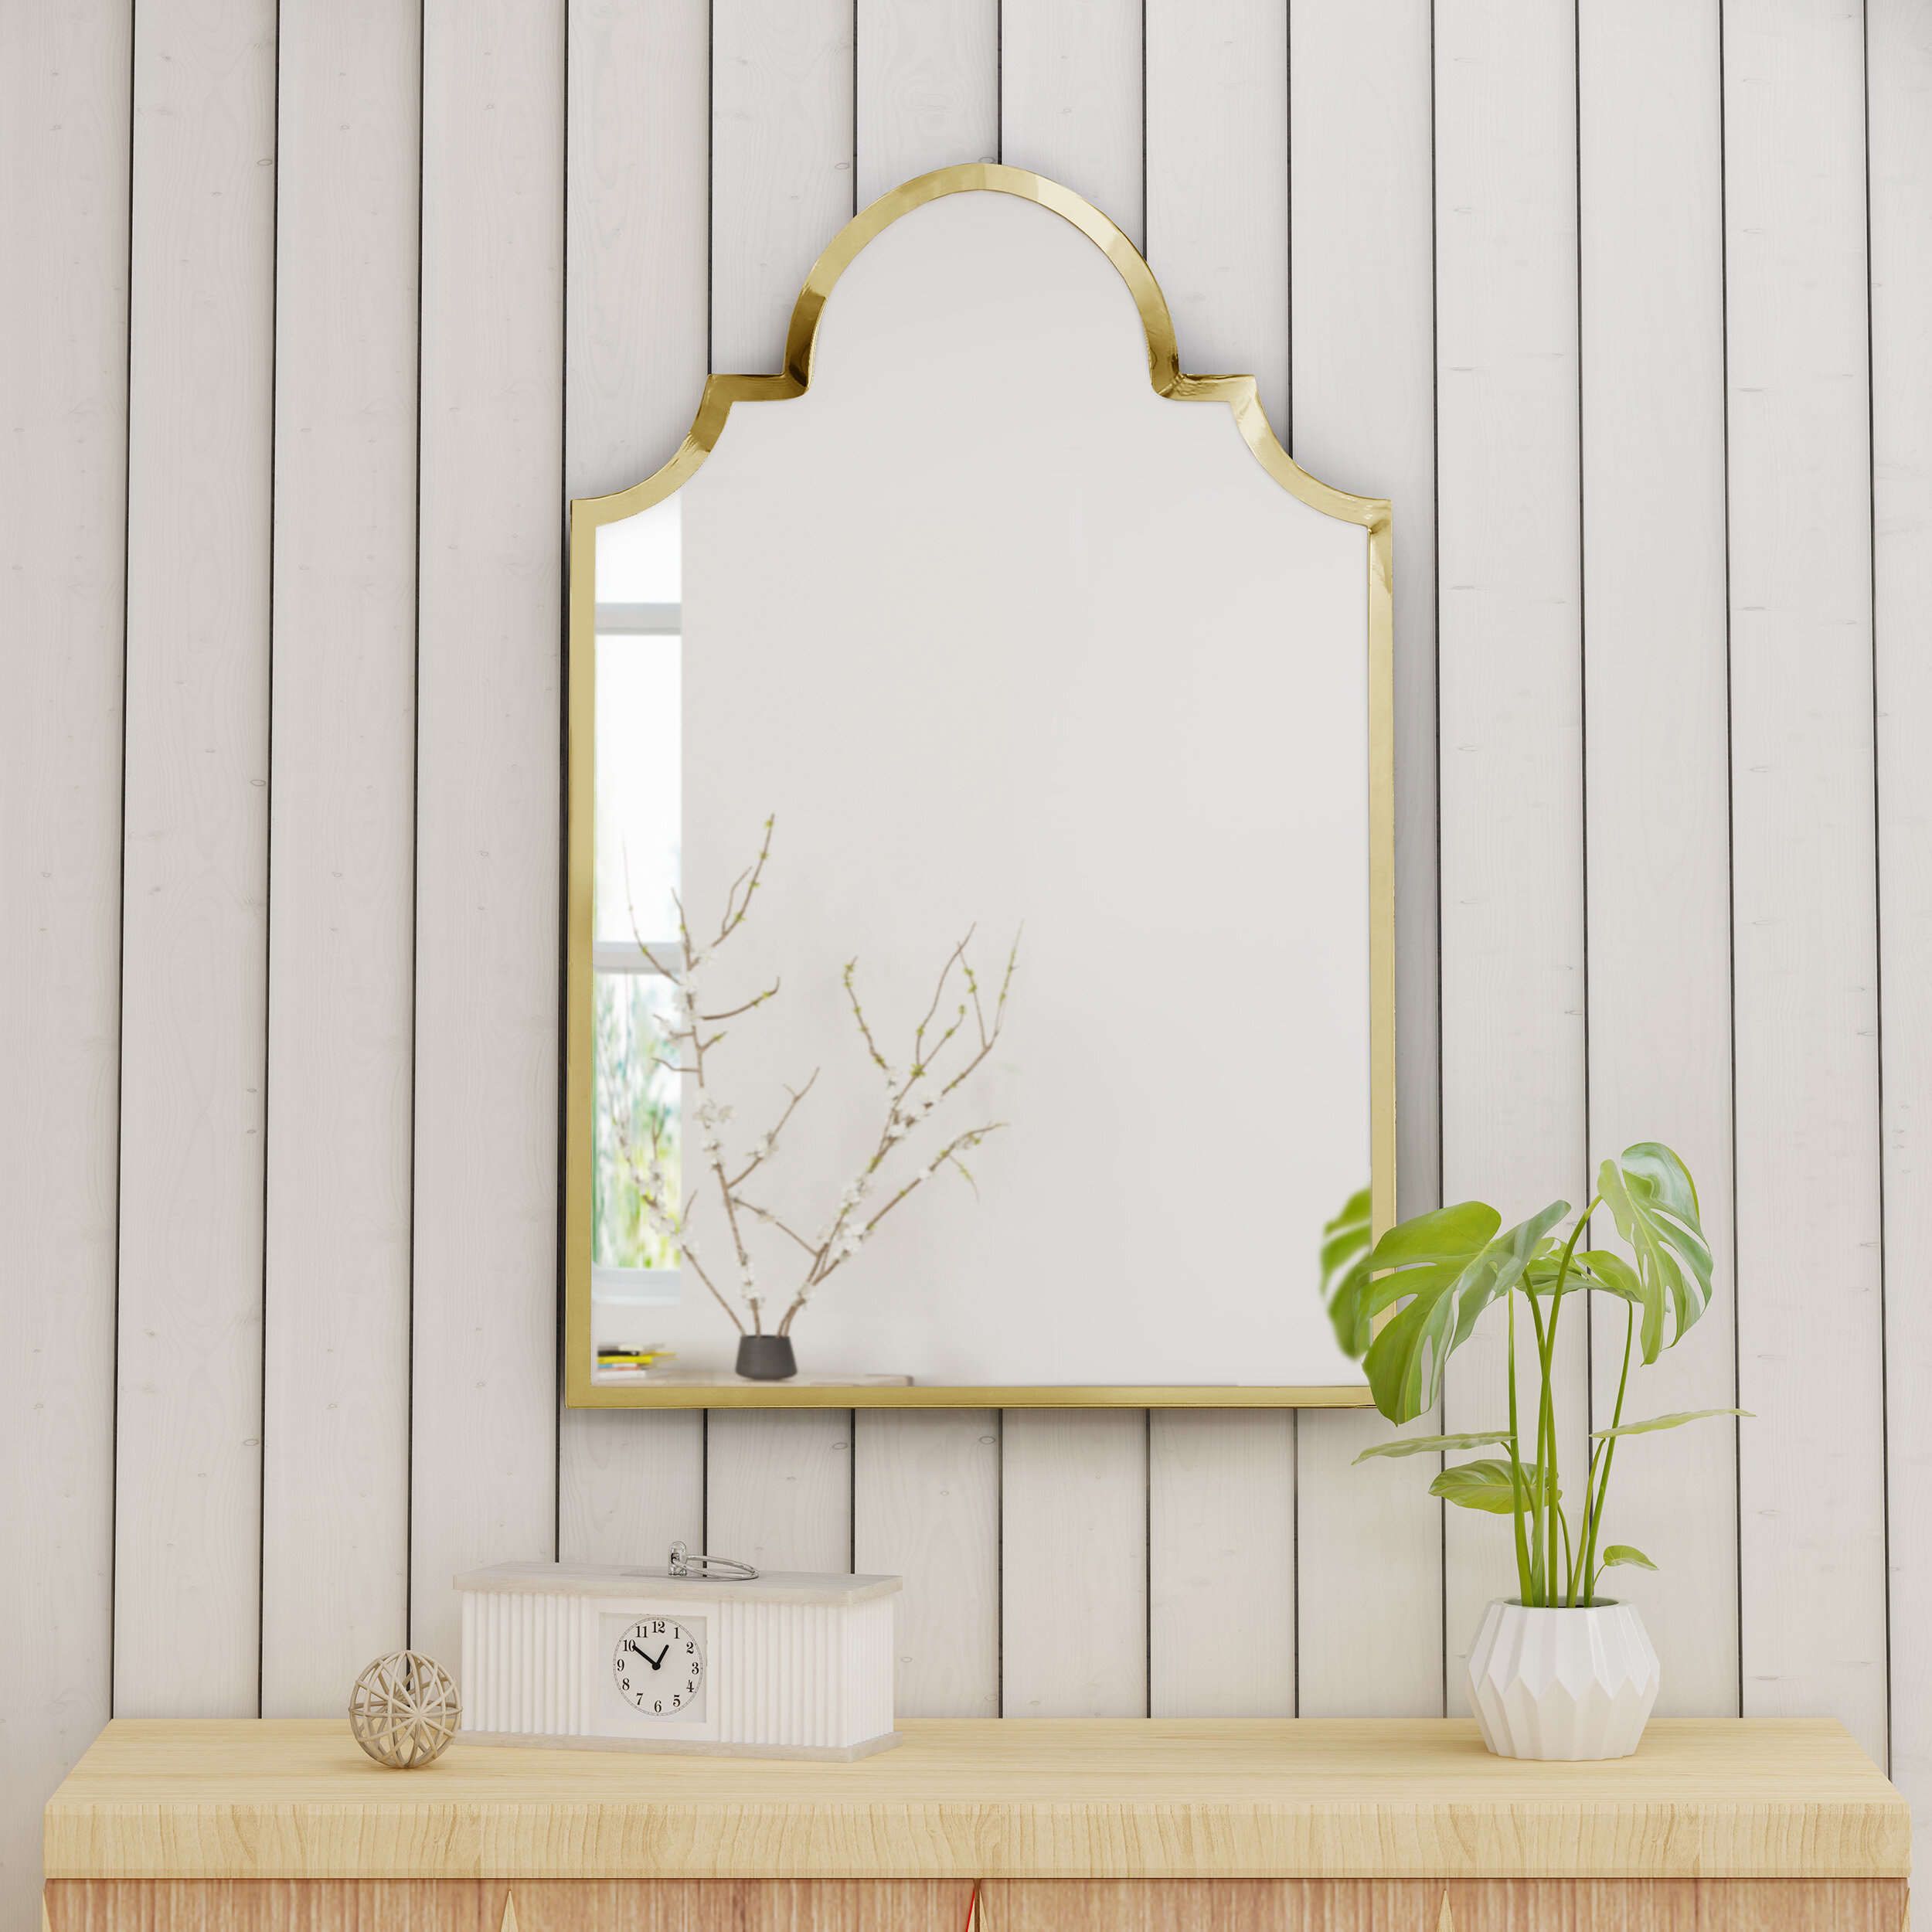 Cassel Modern & Contemporary Accent Mirror With Regard To Guidinha Modern & Contemporary Accent Mirrors (View 15 of 30)